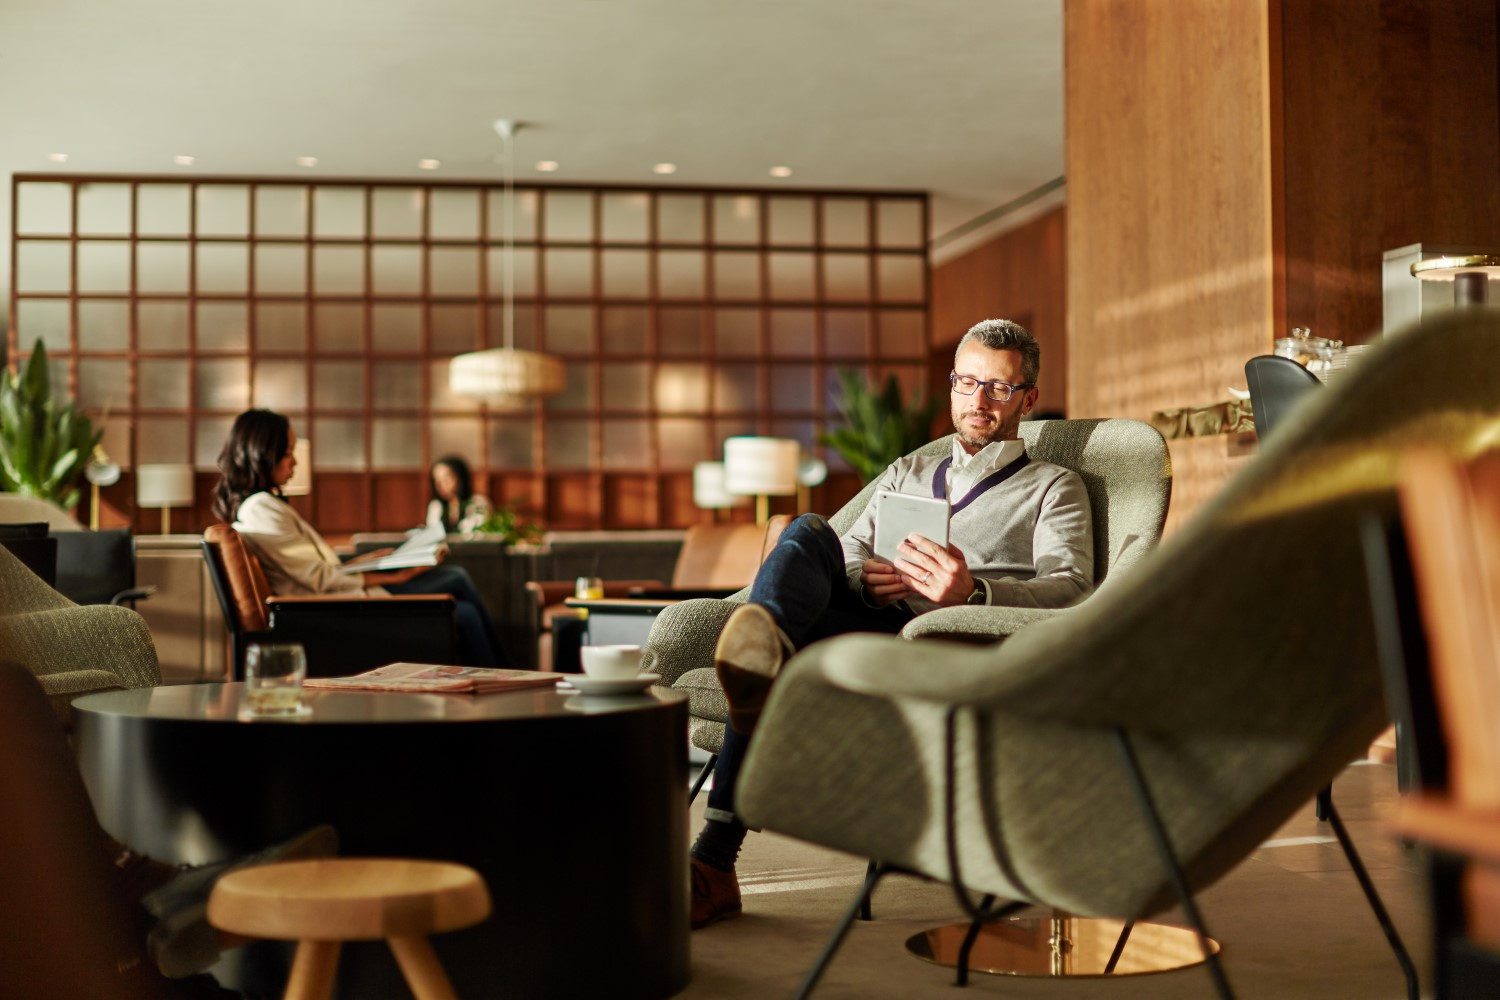 The lounge lacks spaces to both have a bite to eat and prop up a tablet. Image: Cathay Pacific